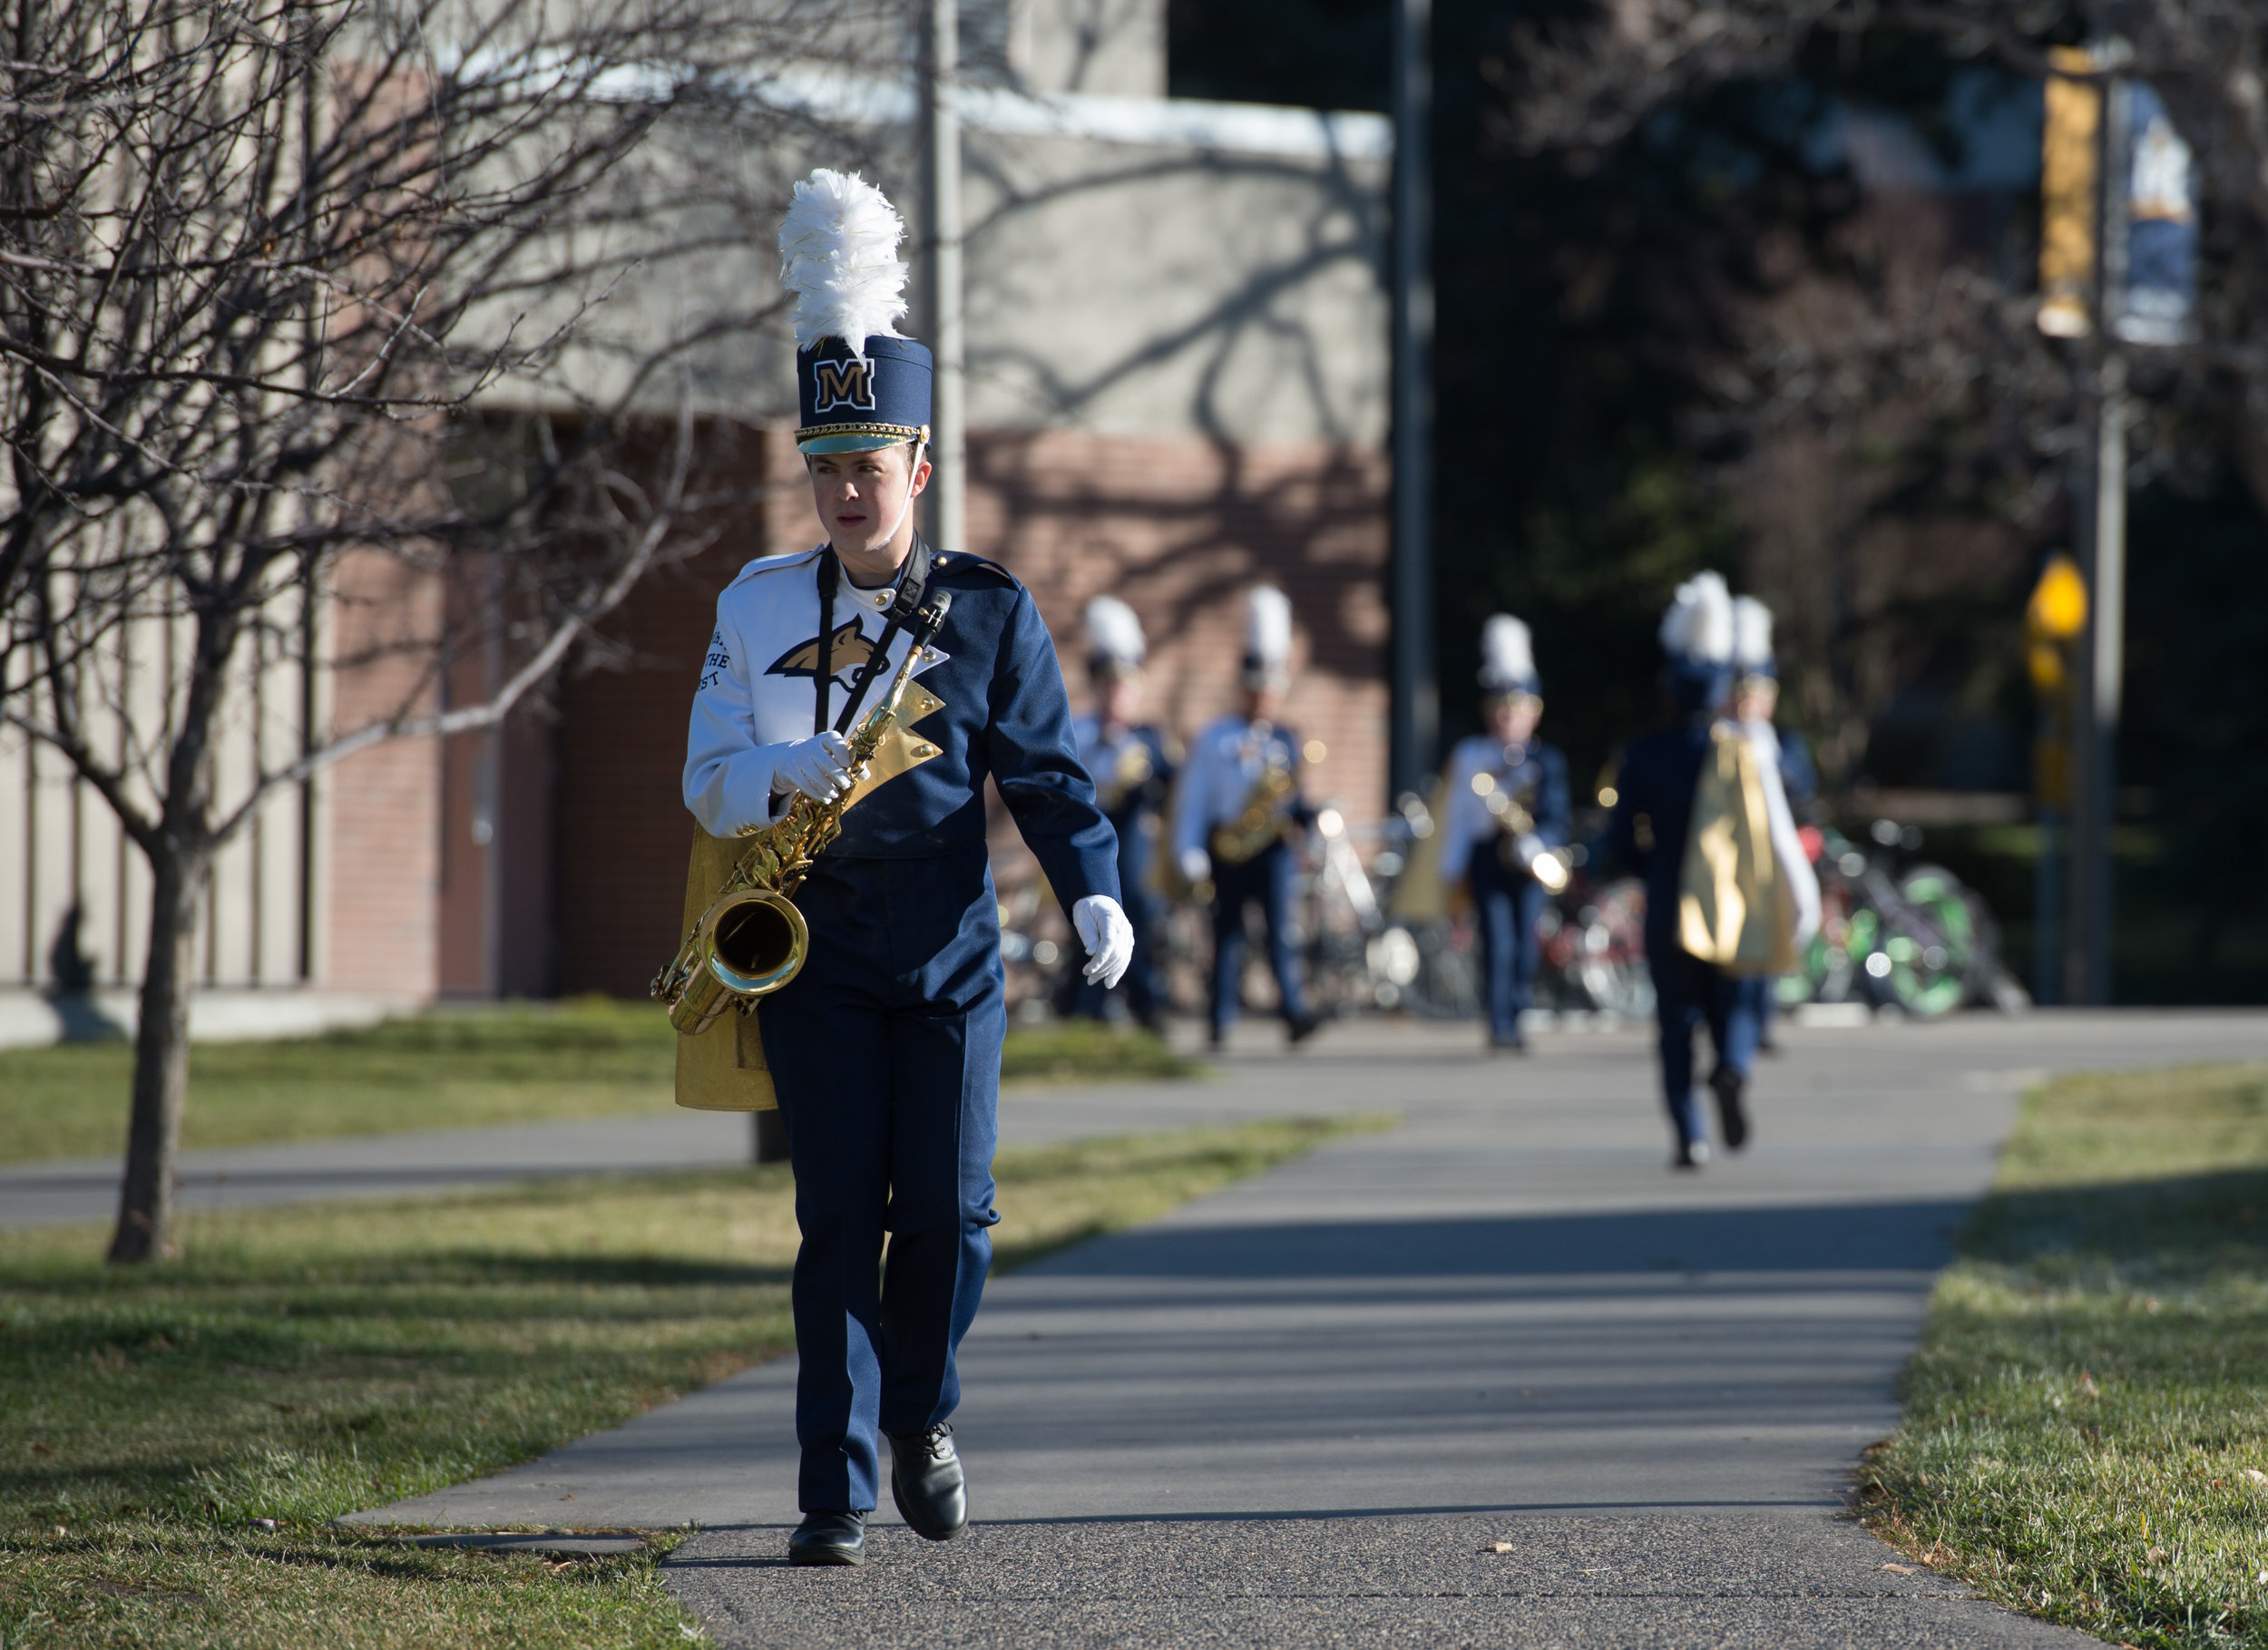 Spirit of the West tenor saxophonist Brandon Stinson heads for the practice field for warmups prior to a game day performance Saturday, Oct. 28, 2017.